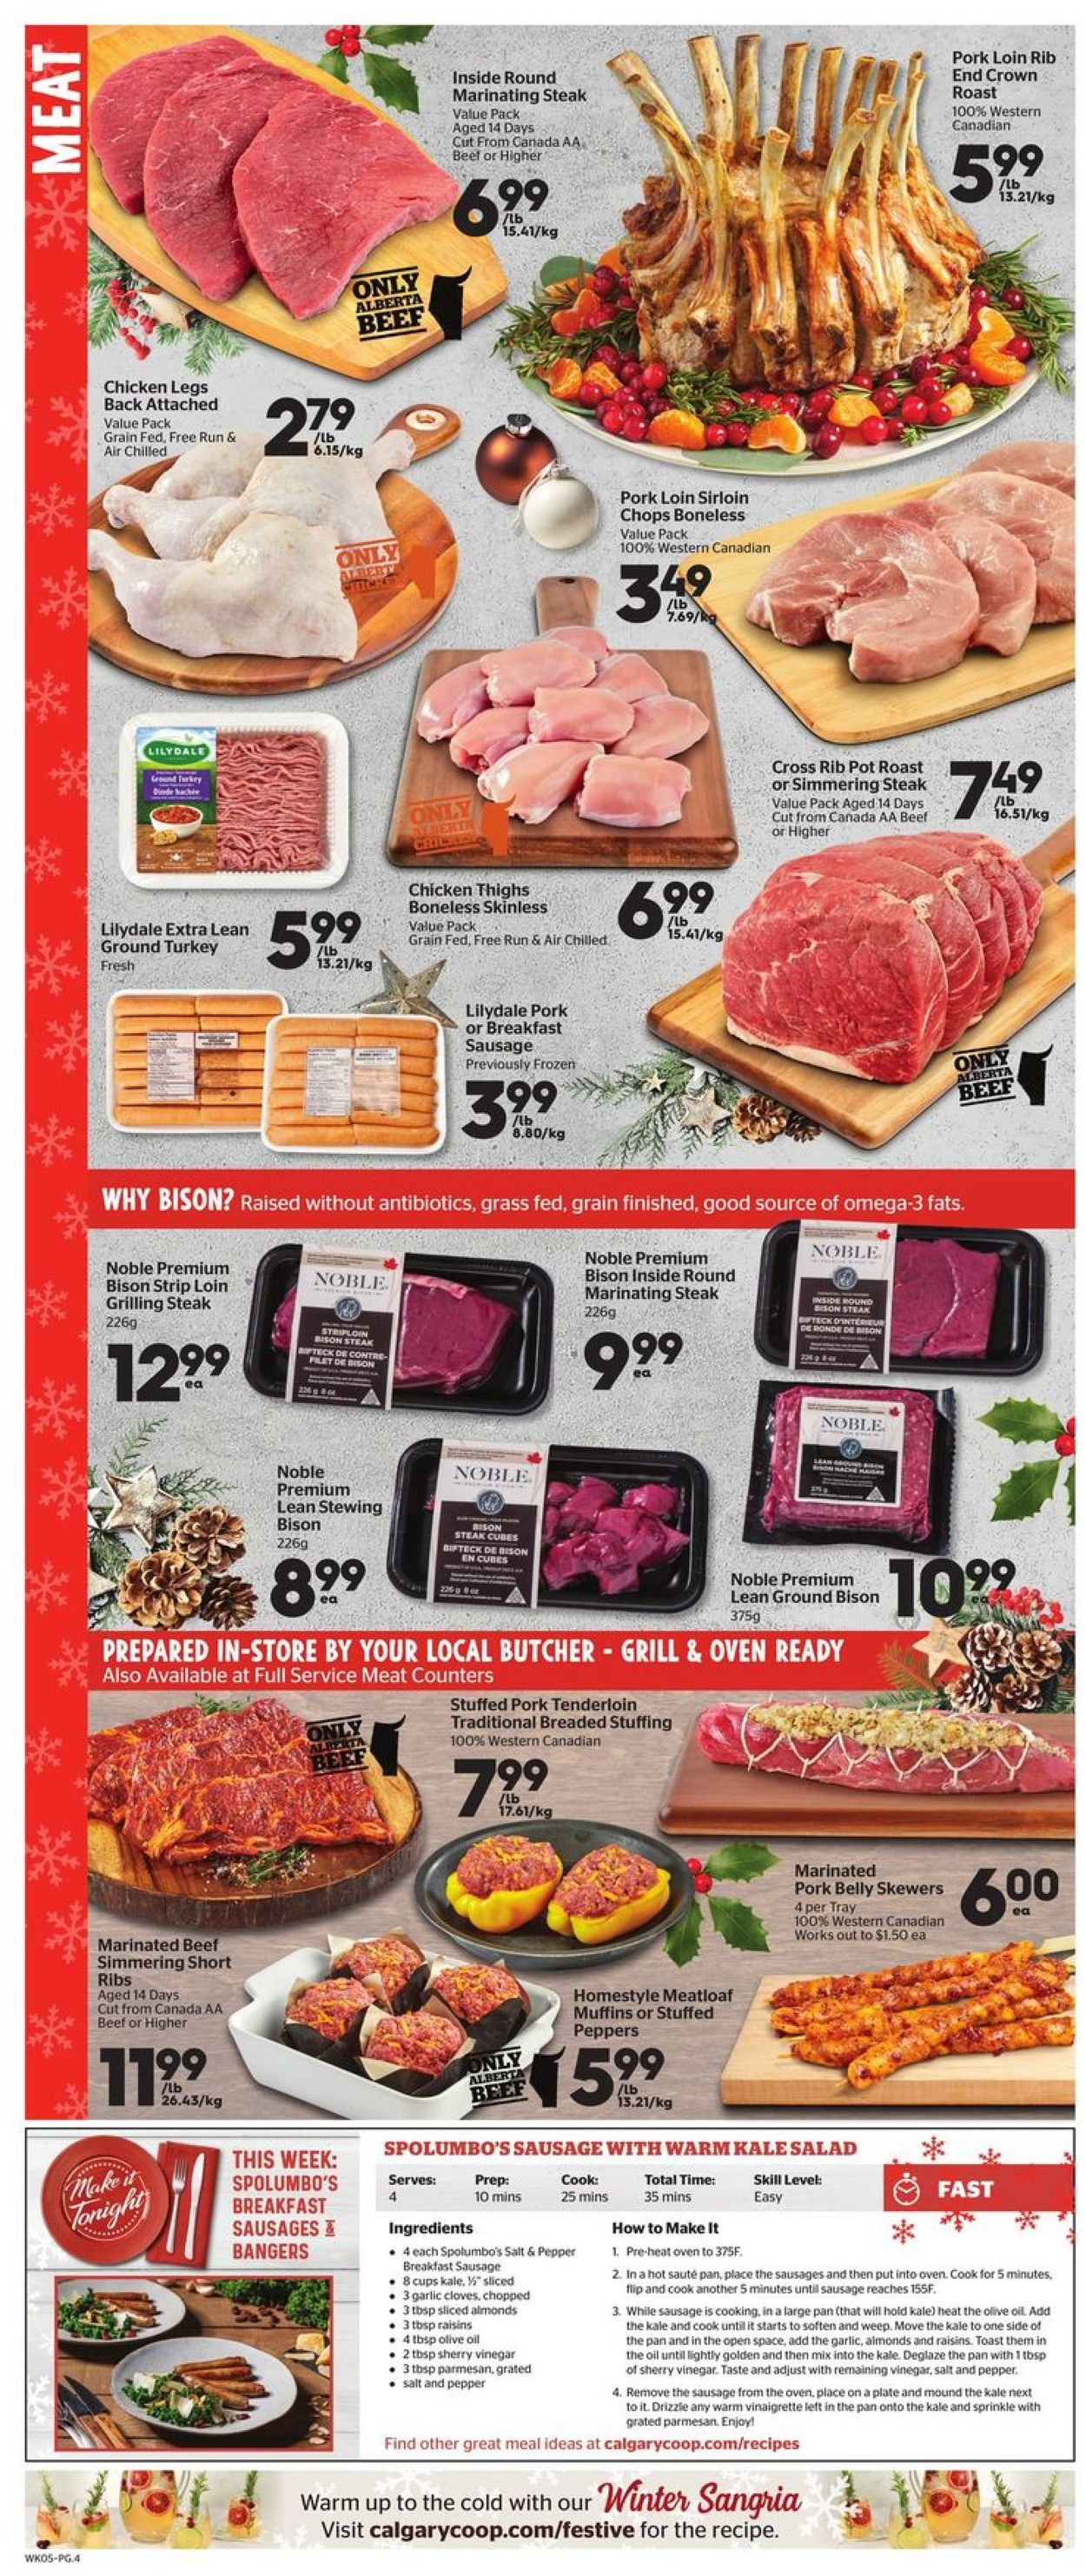 Calgary Co-op - Holidays 2020 Flyer - 12/03-12/09/2020 (Page 4)